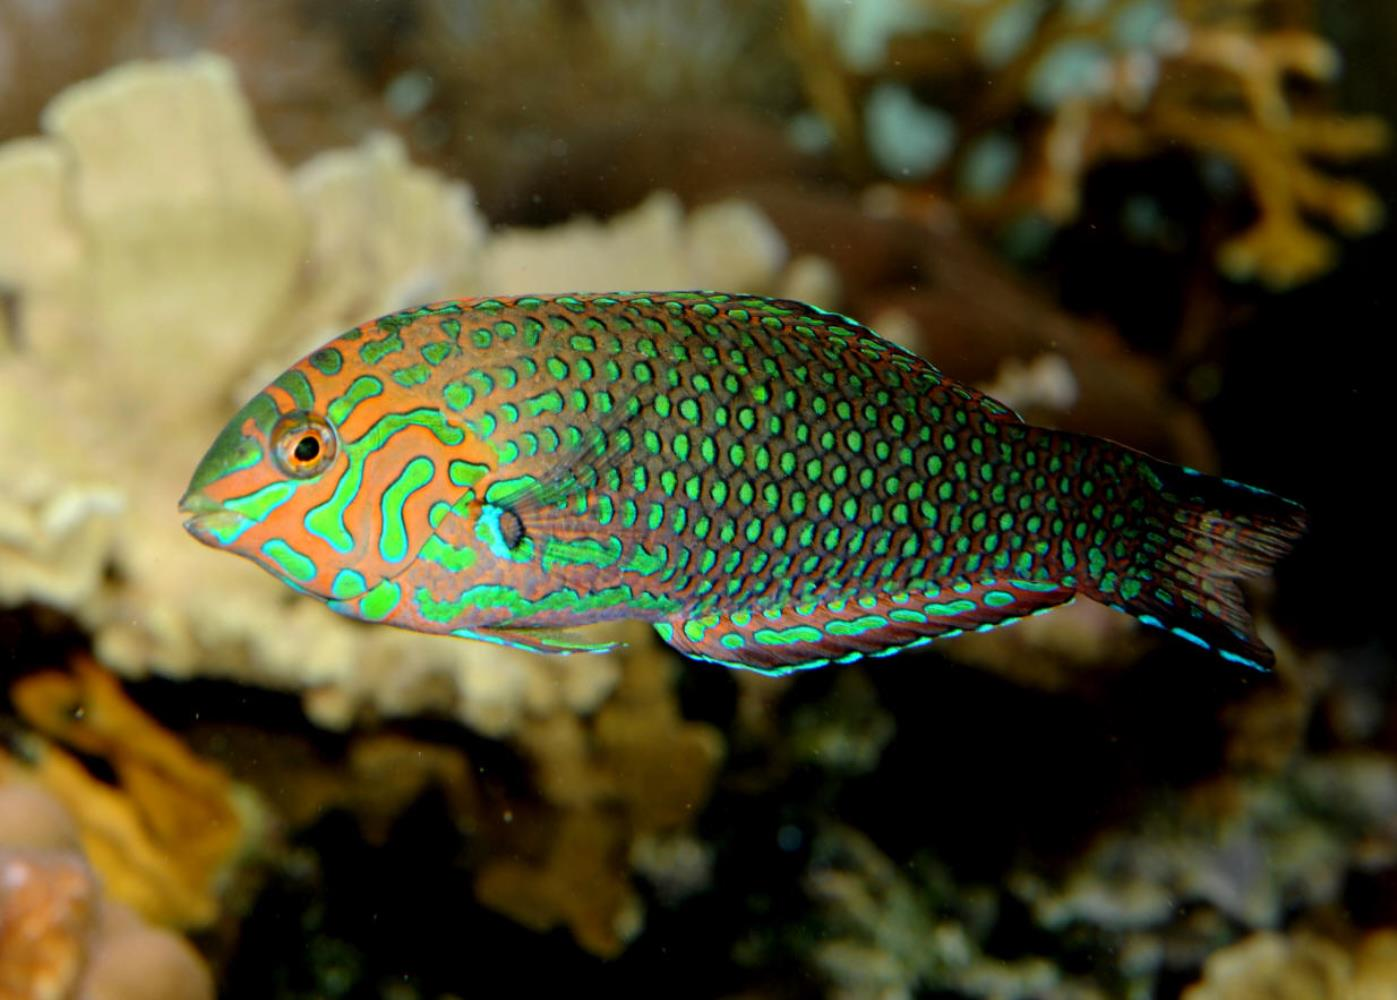 False Leopard Wrasse